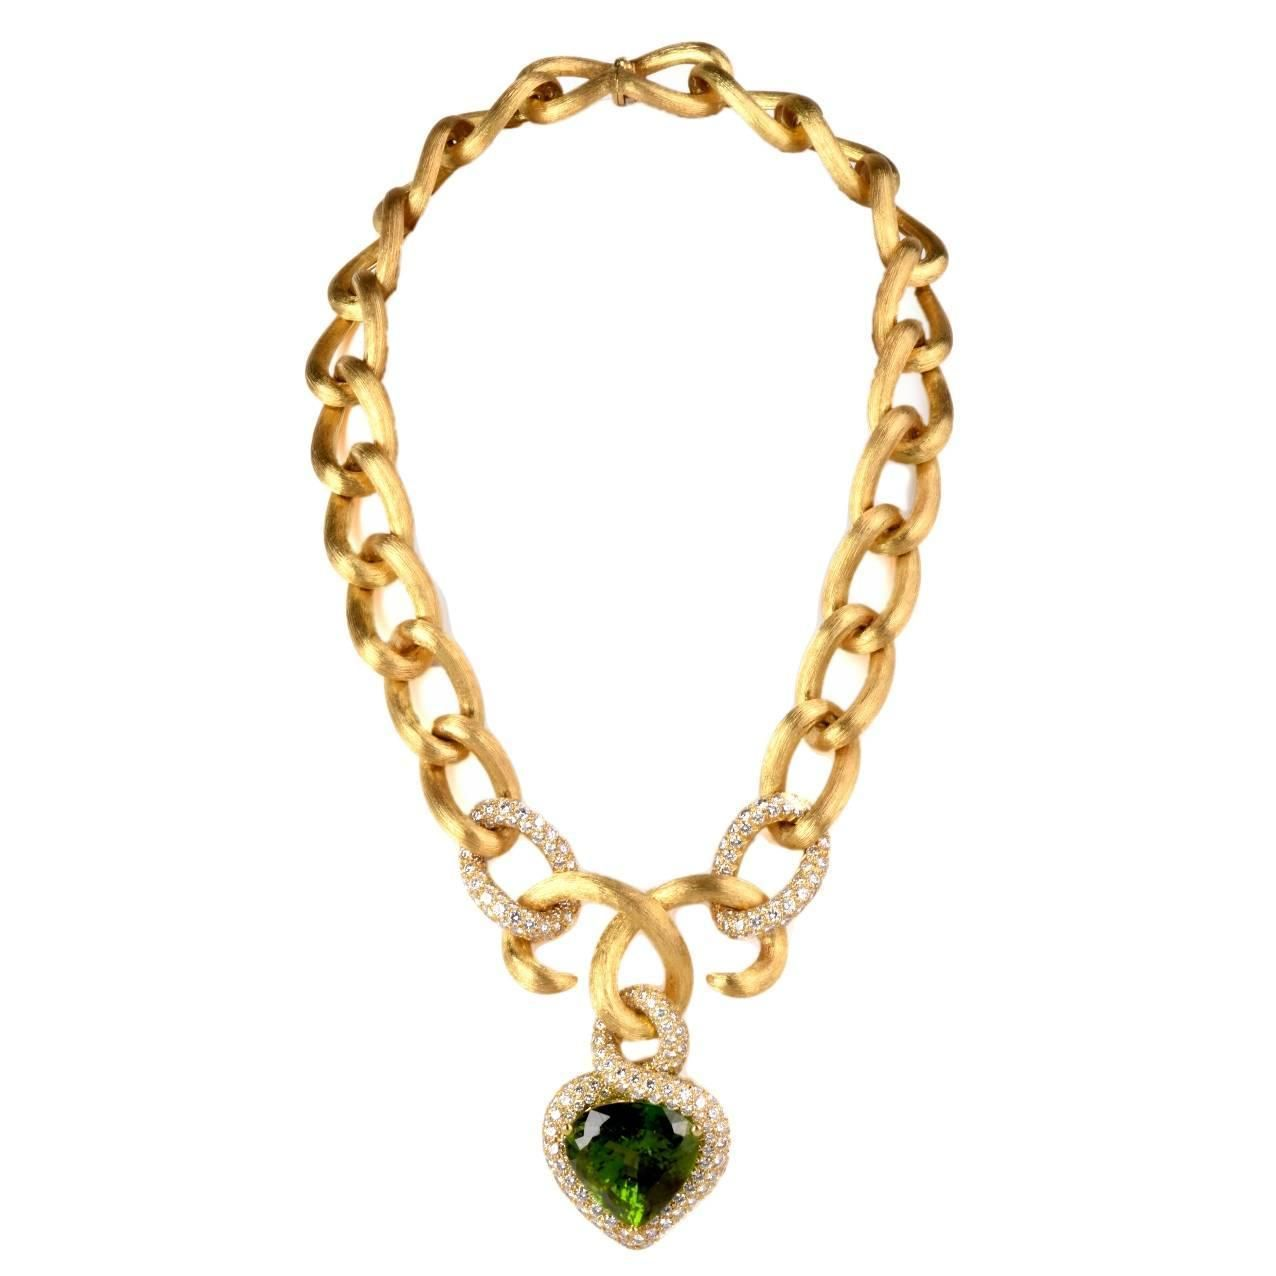 Henry Dunay GIA Cert 61.97 Carat Peridot Diamond gold Heart Pendant Necklace | See more rare vintage Drop Necklaces at https://www.1stdibs.com/jewelry/necklaces/drop-necklaces